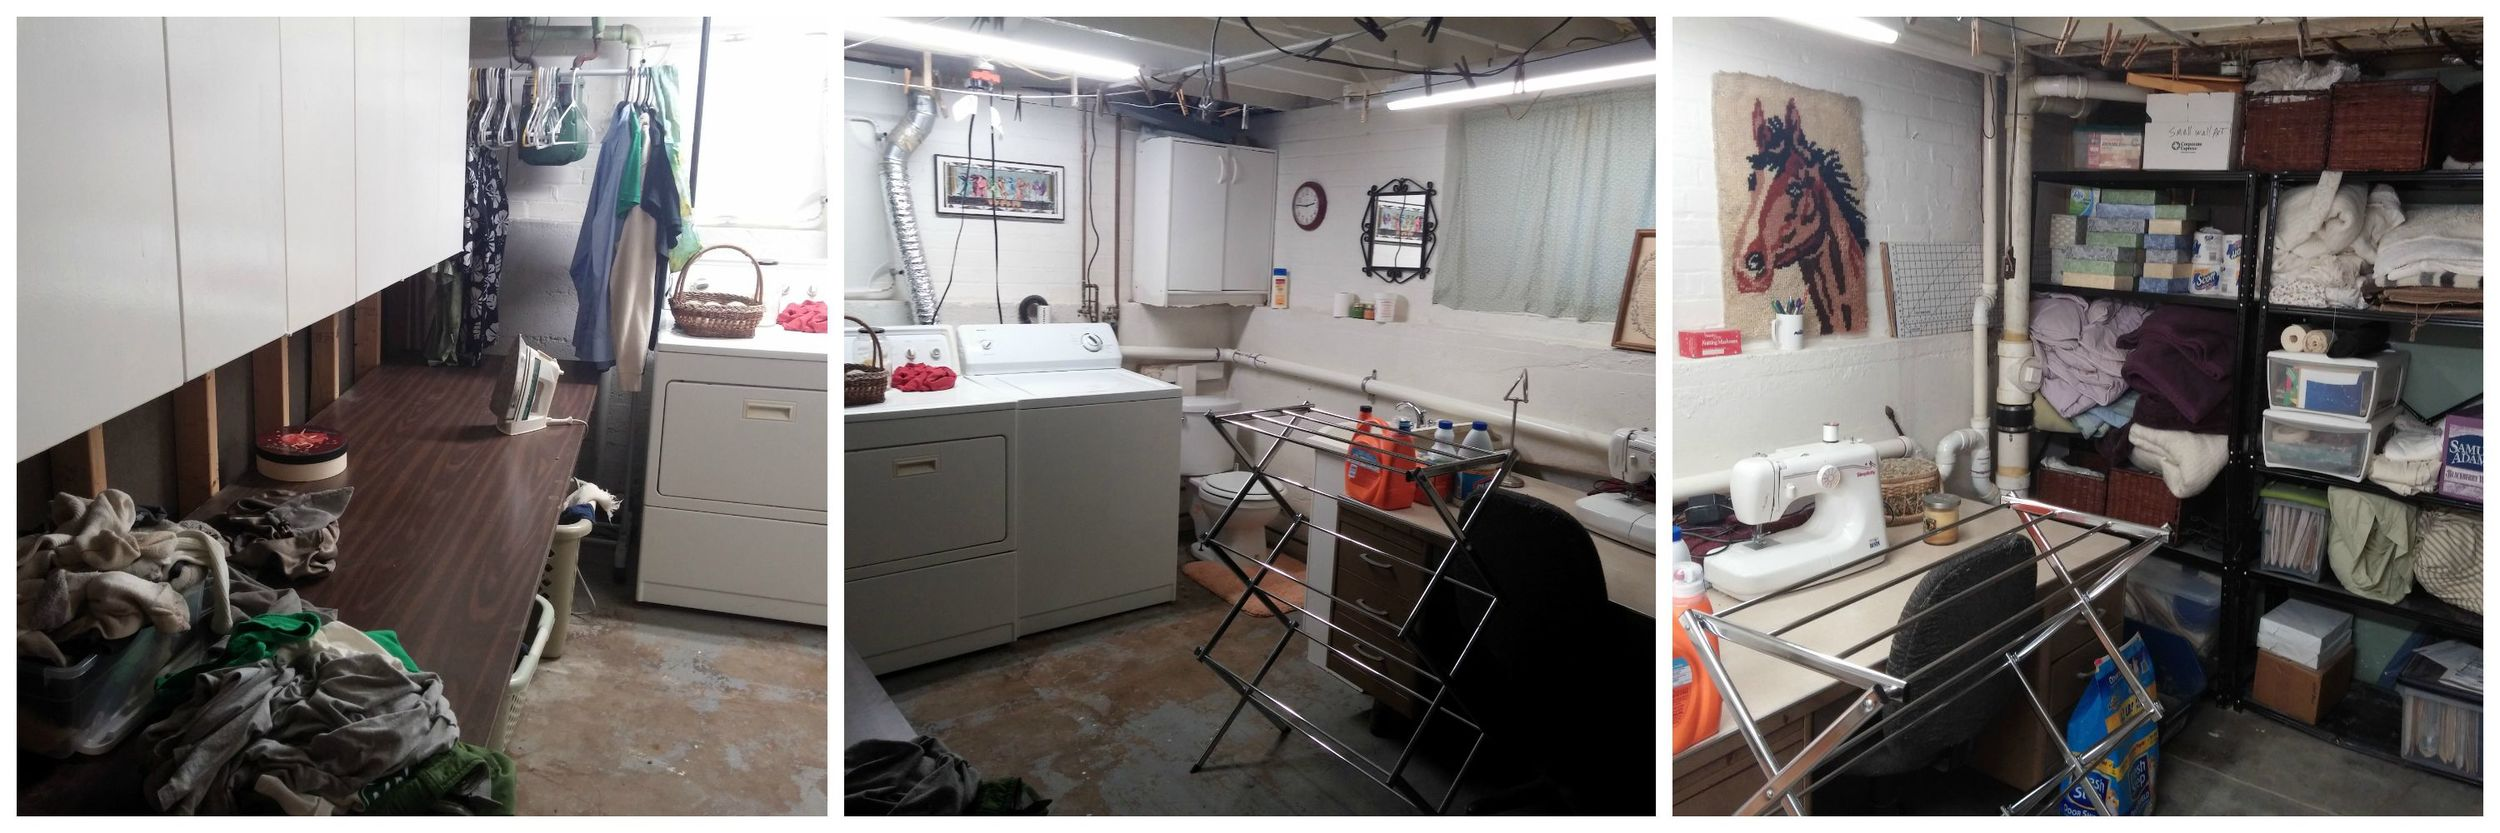 Laundry room eight months later